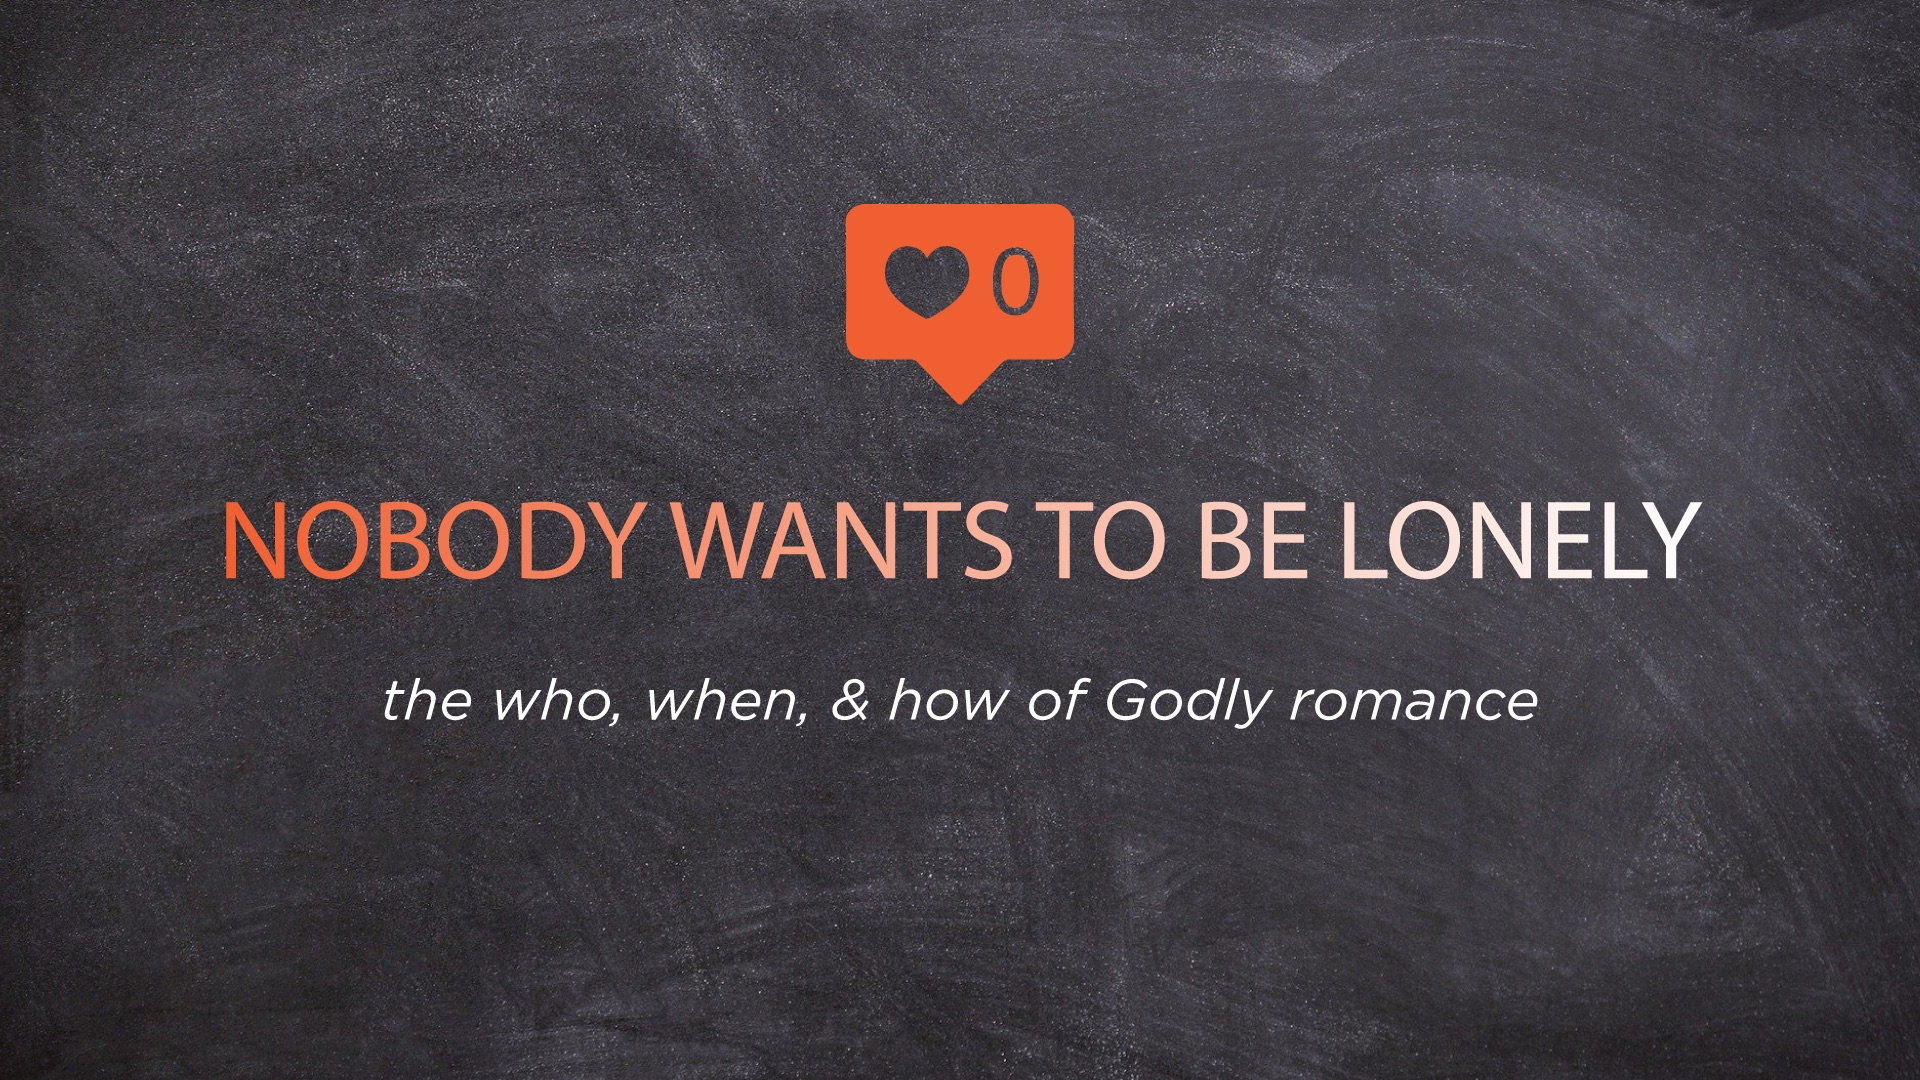 The How of Godly Romance